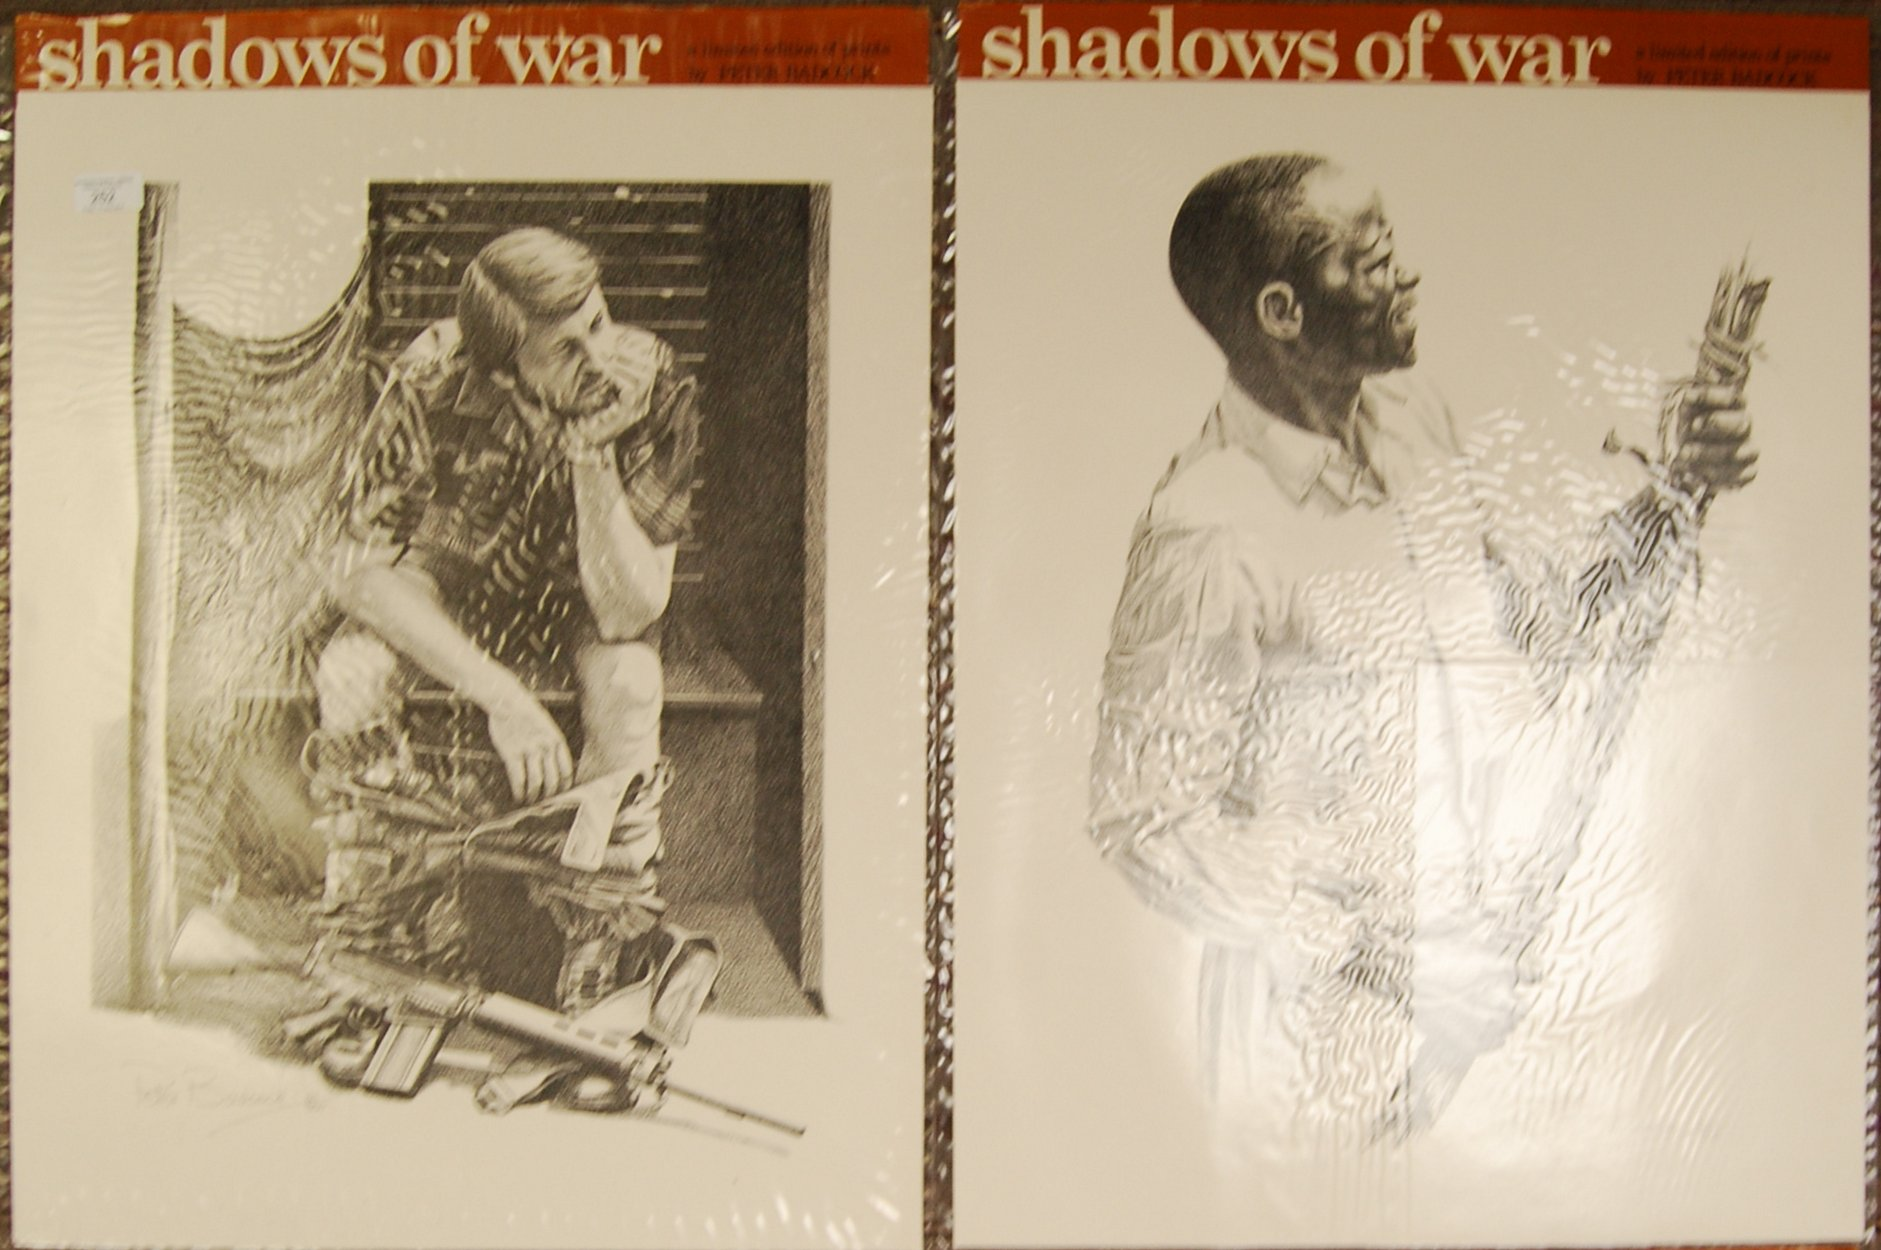 RHODESIA SHADOWS OF WAR LIMITED EDITION PRINTS BY PETER BADCOCK - Image 2 of 5